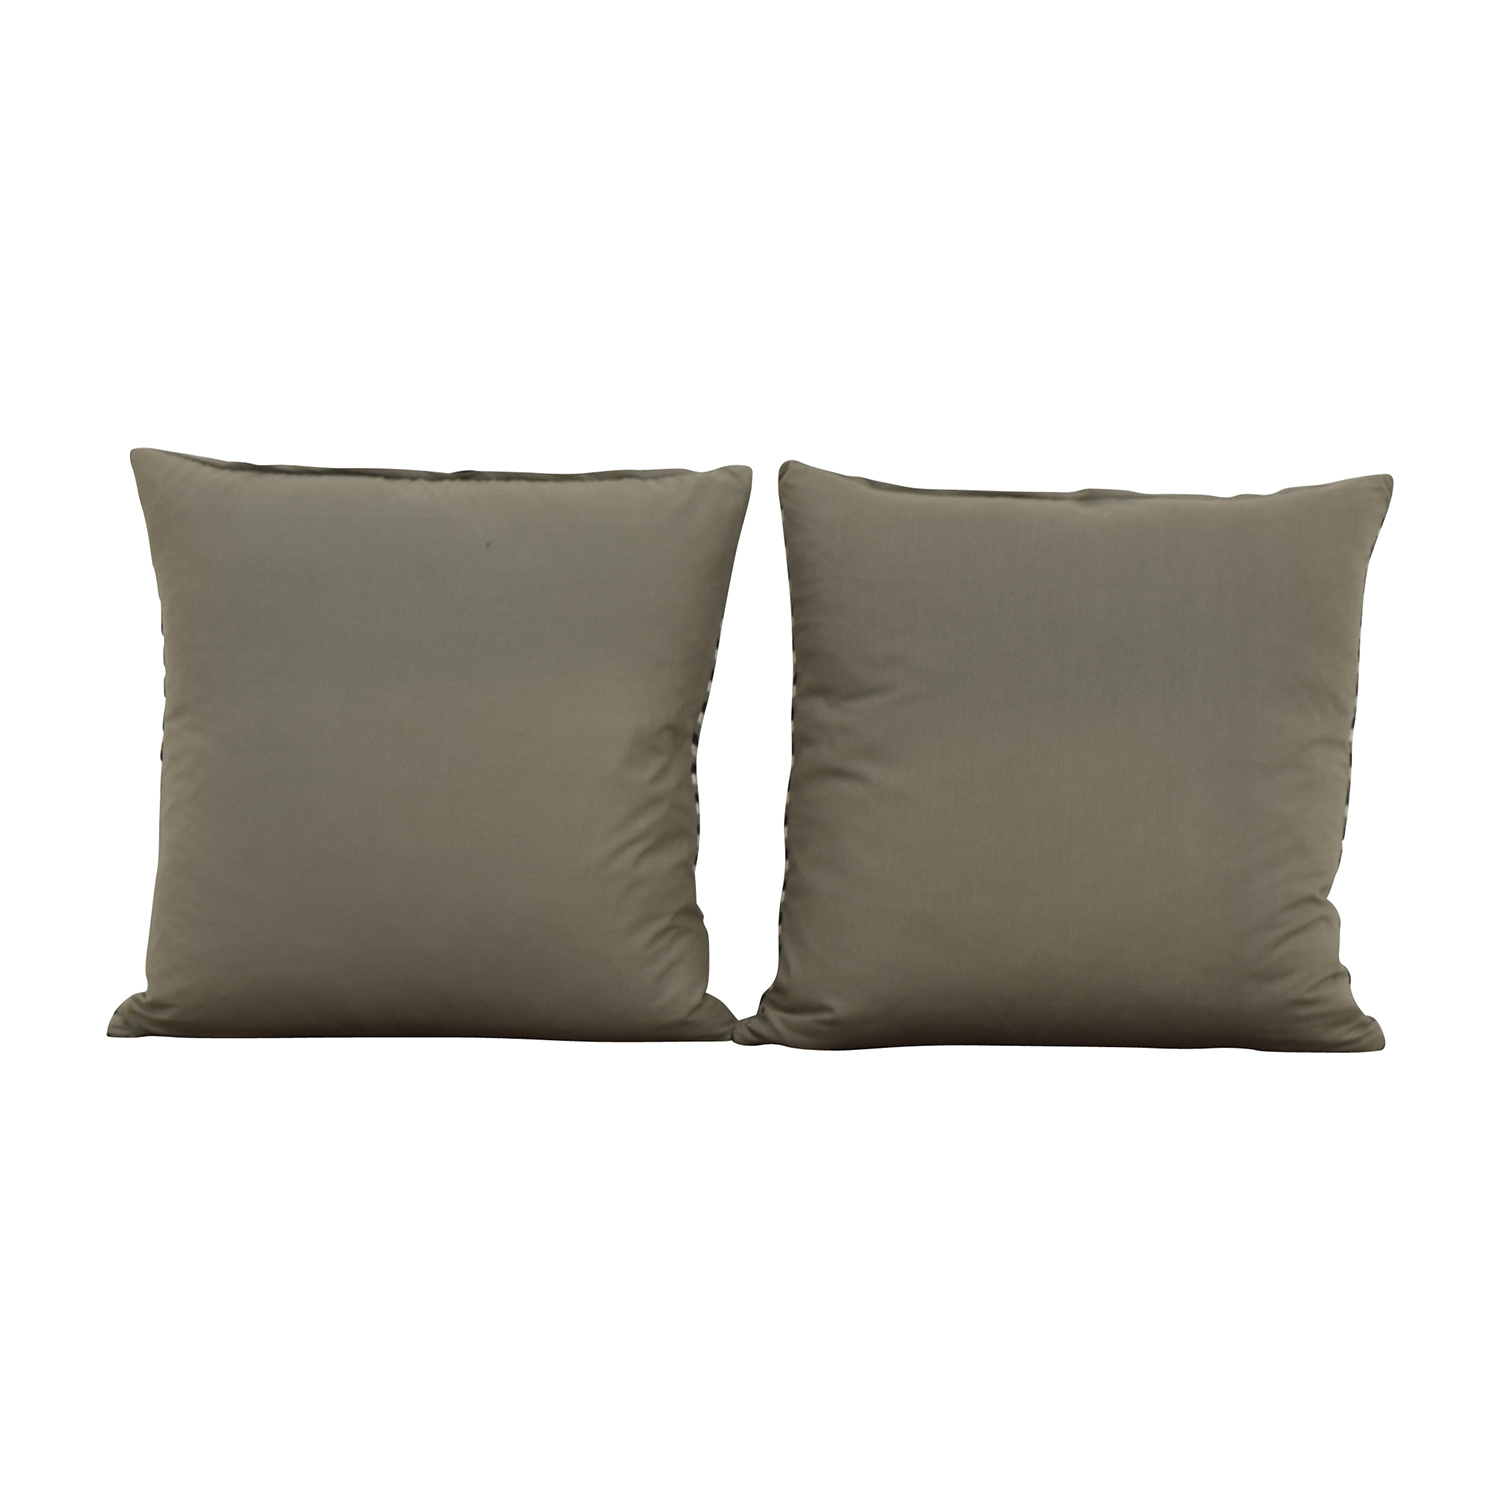 shop Striped Black Cream and Grey Toss Pillows  Decorative Accents